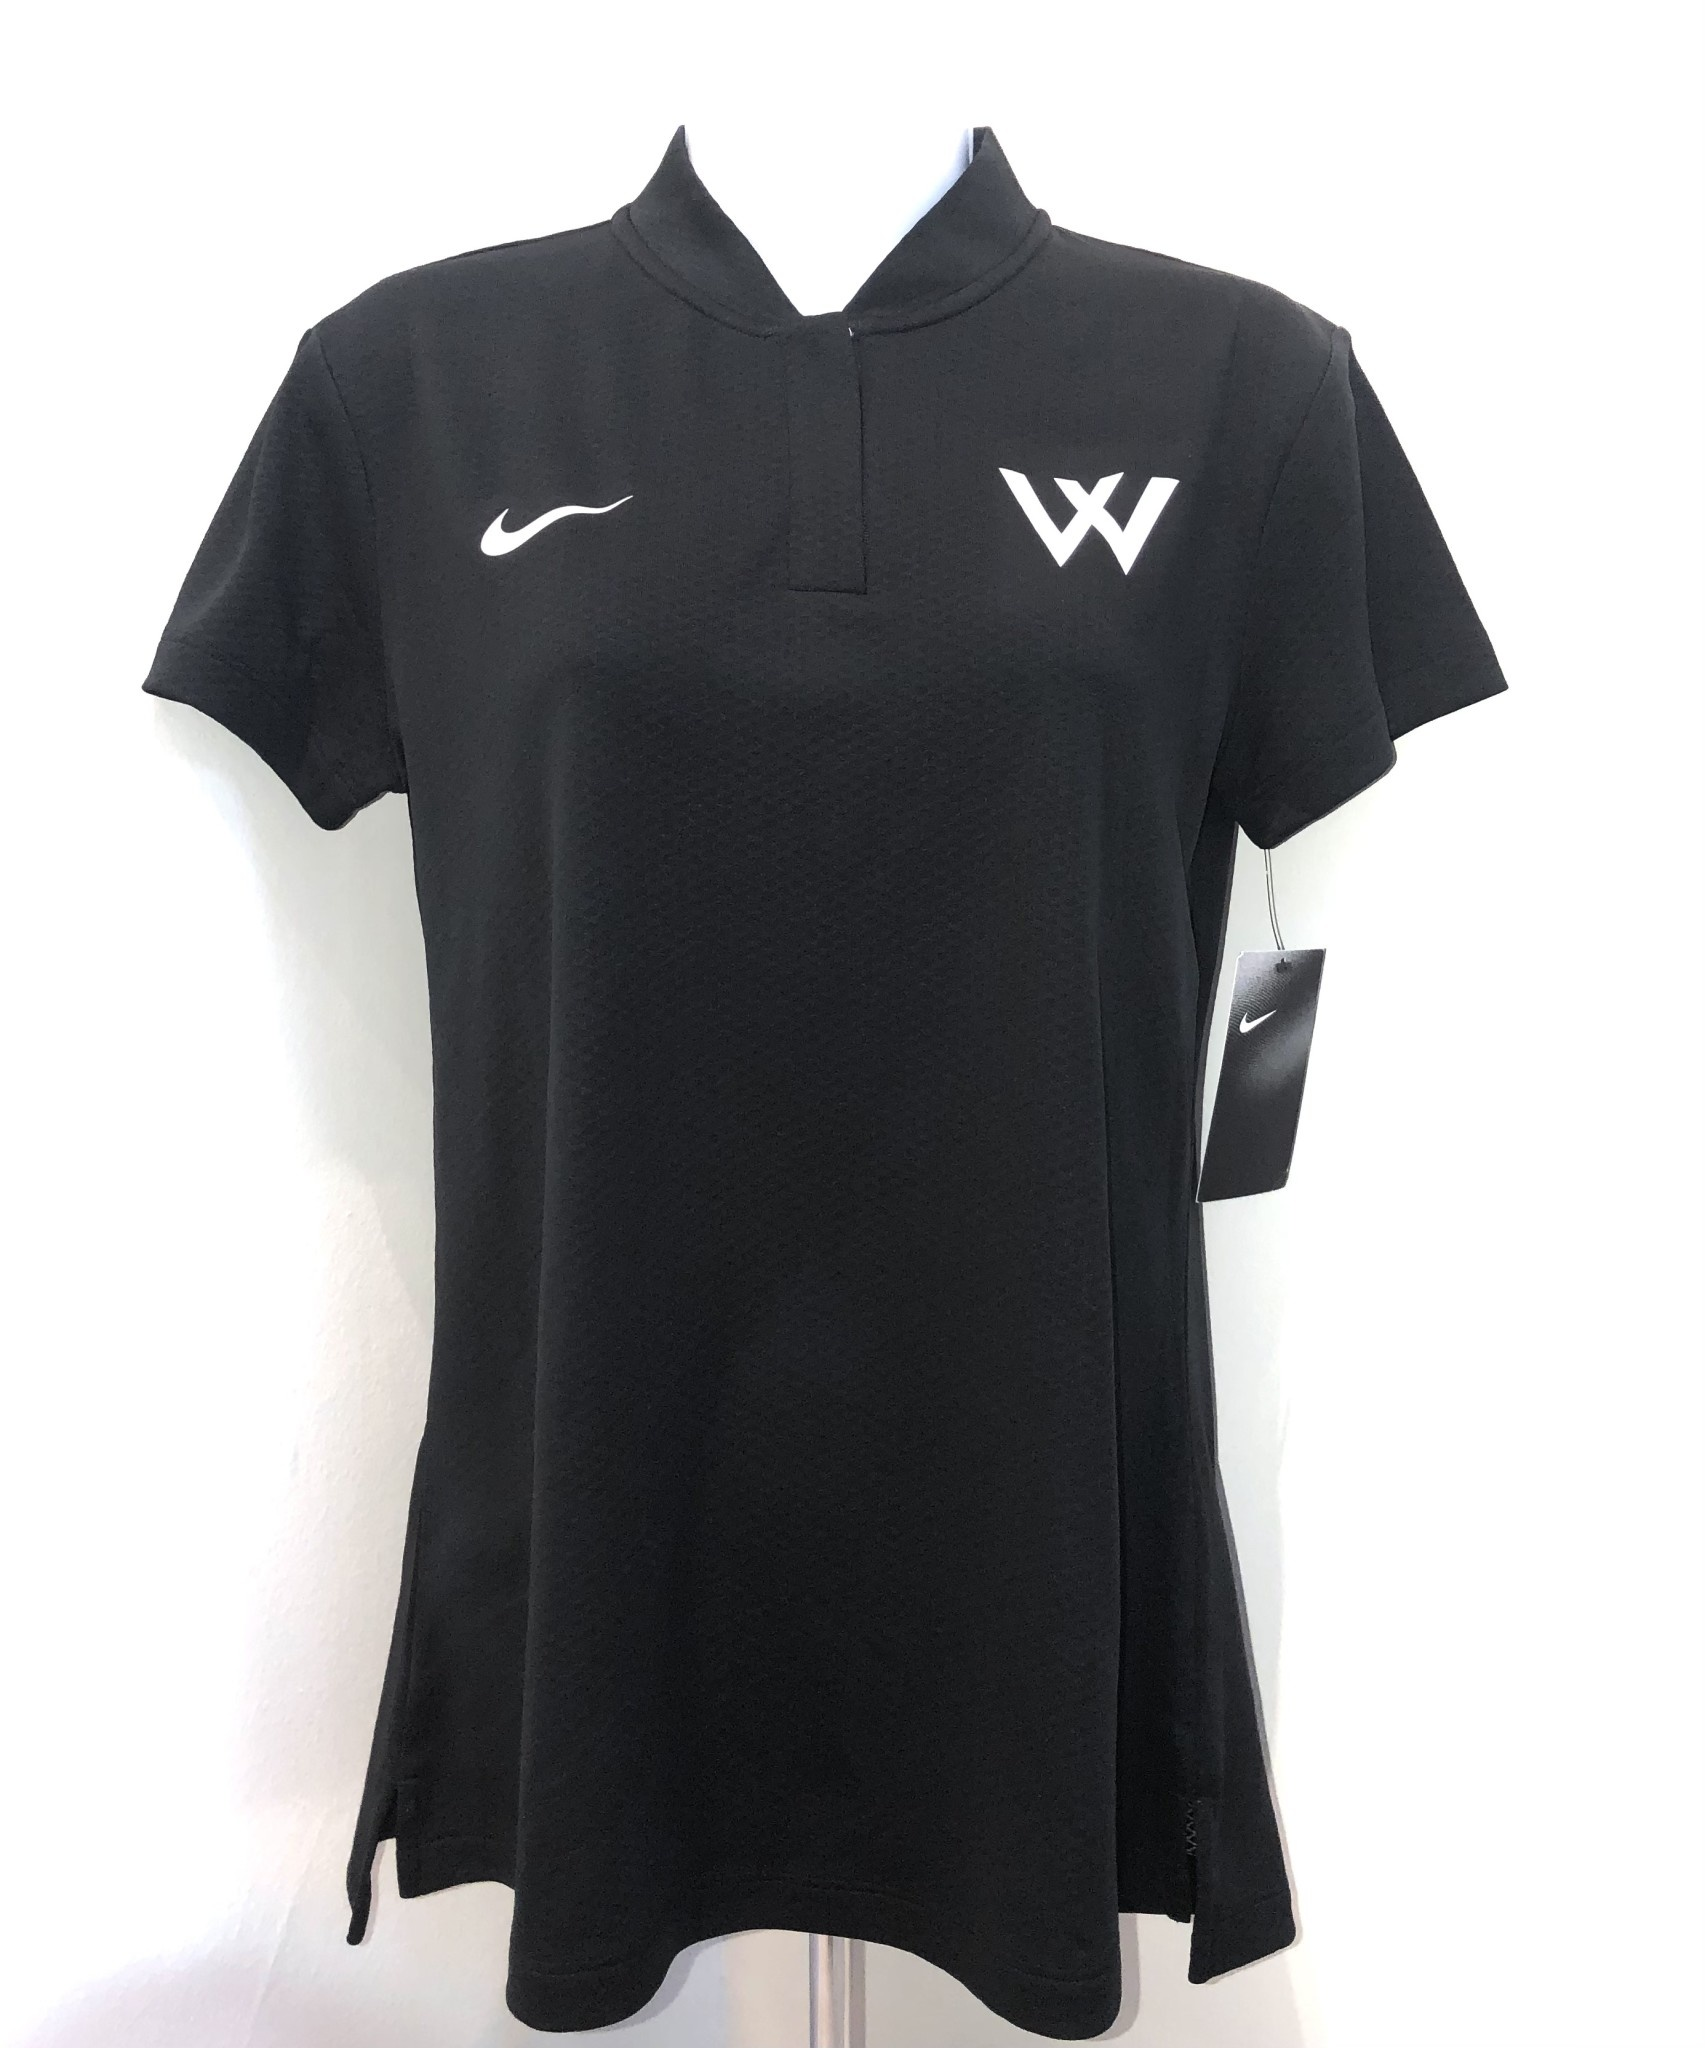 Nike Polo: Nike Women's Ace Blade Polo Black with W